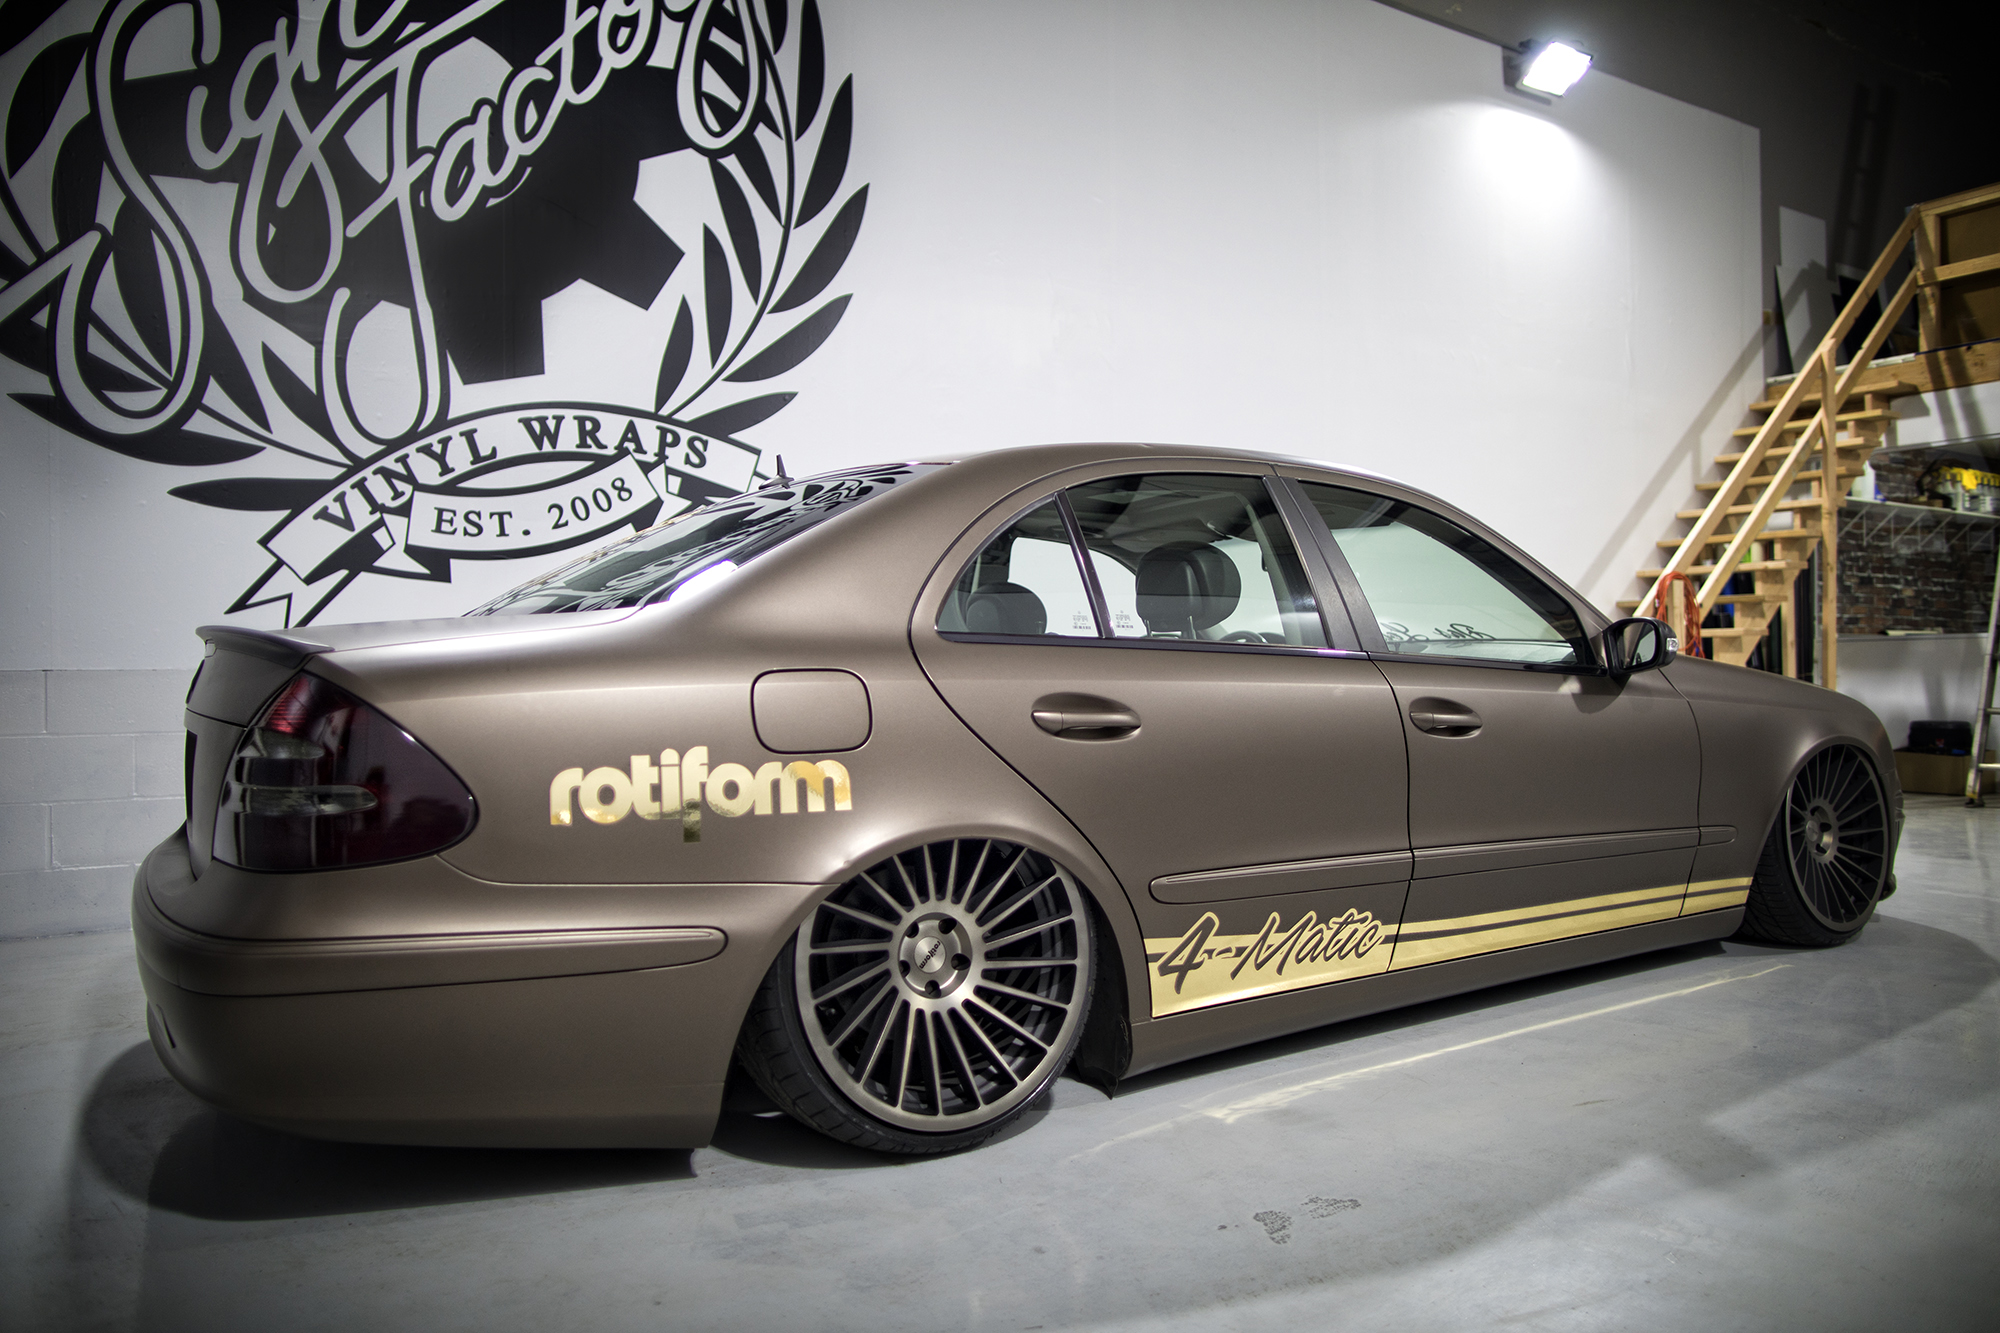 E350 4matic equipped with Rotiform wheels and universal air suspension